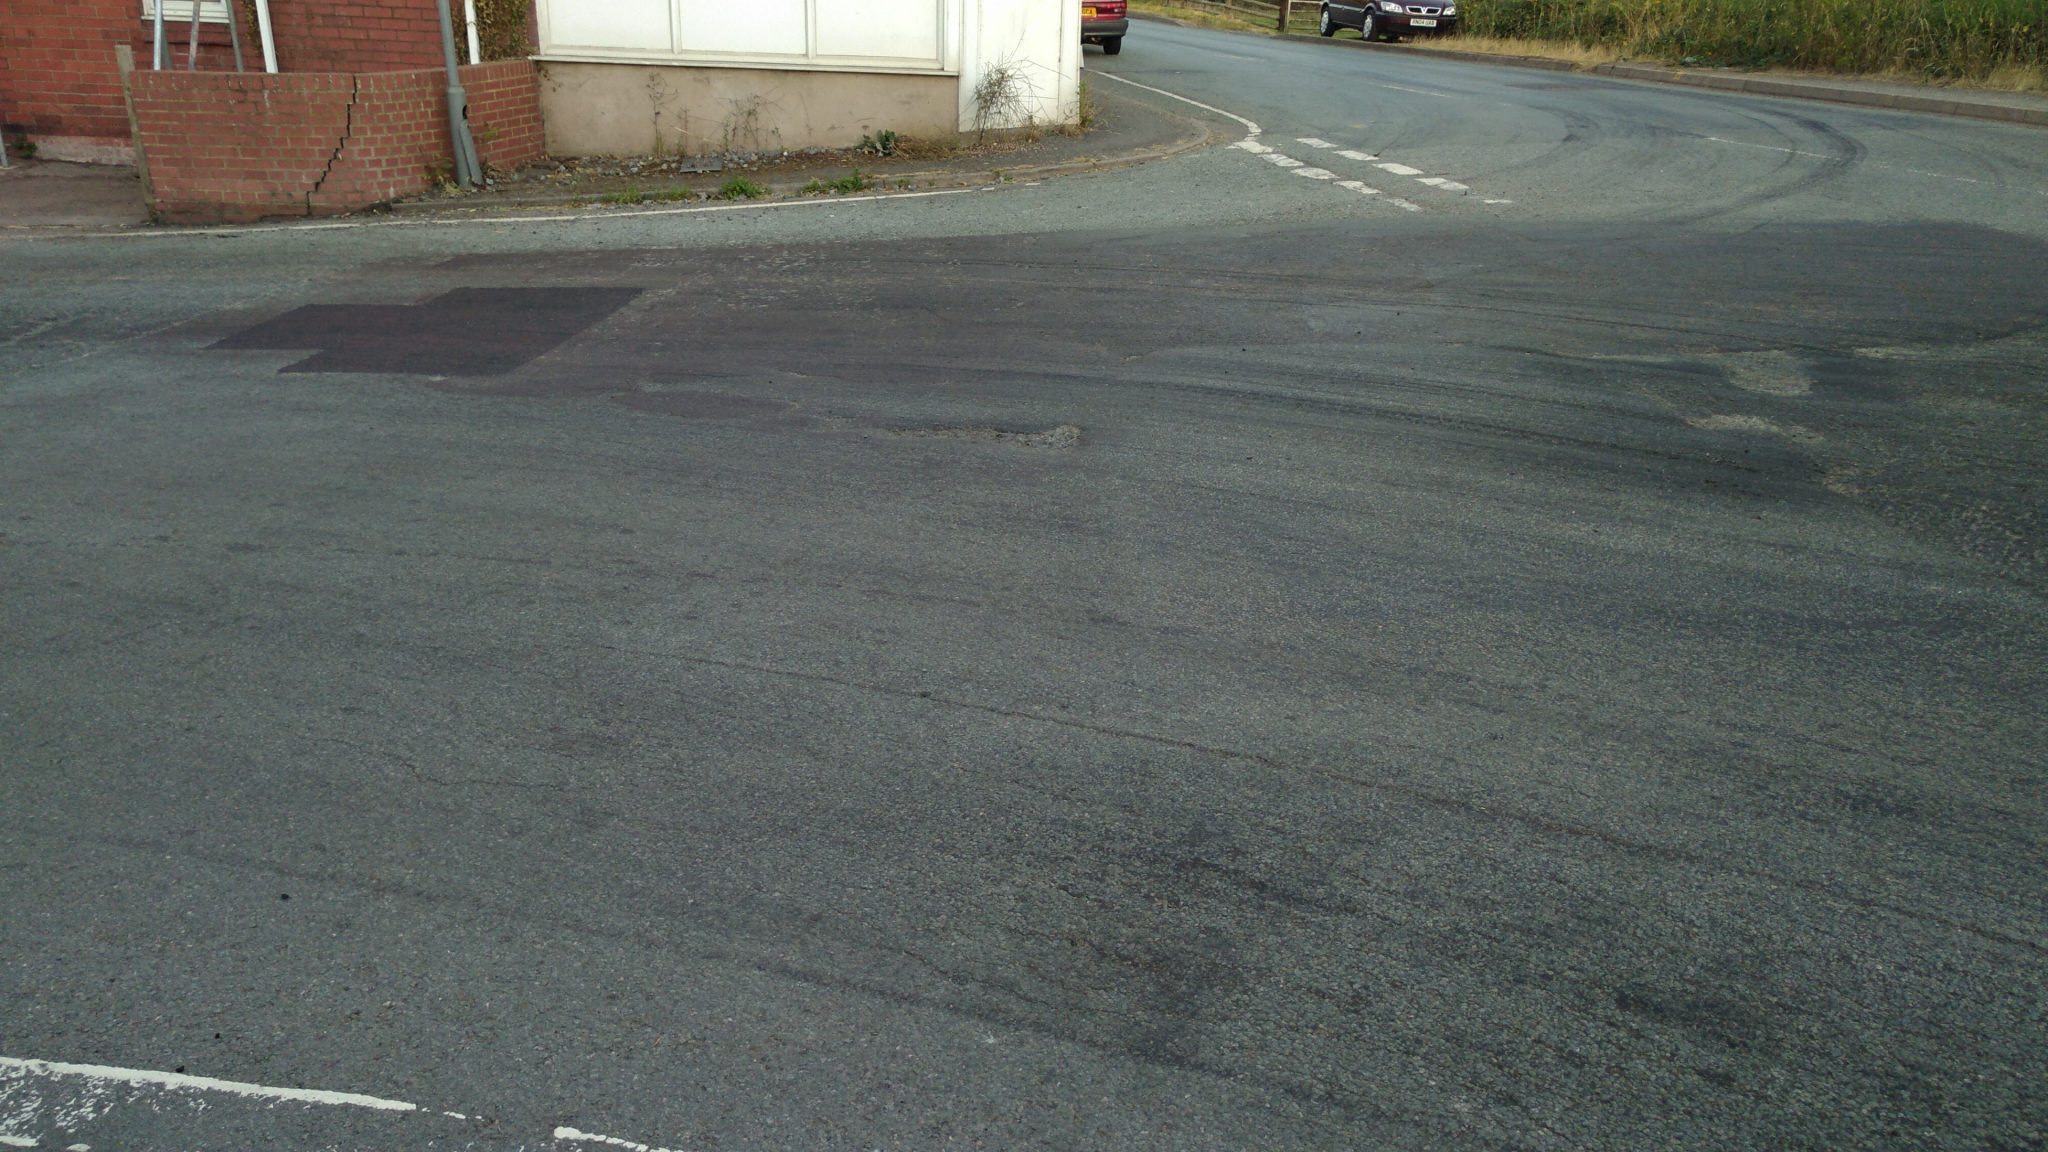 A better patch repair has been done but still leaves the junction in need of a full repair